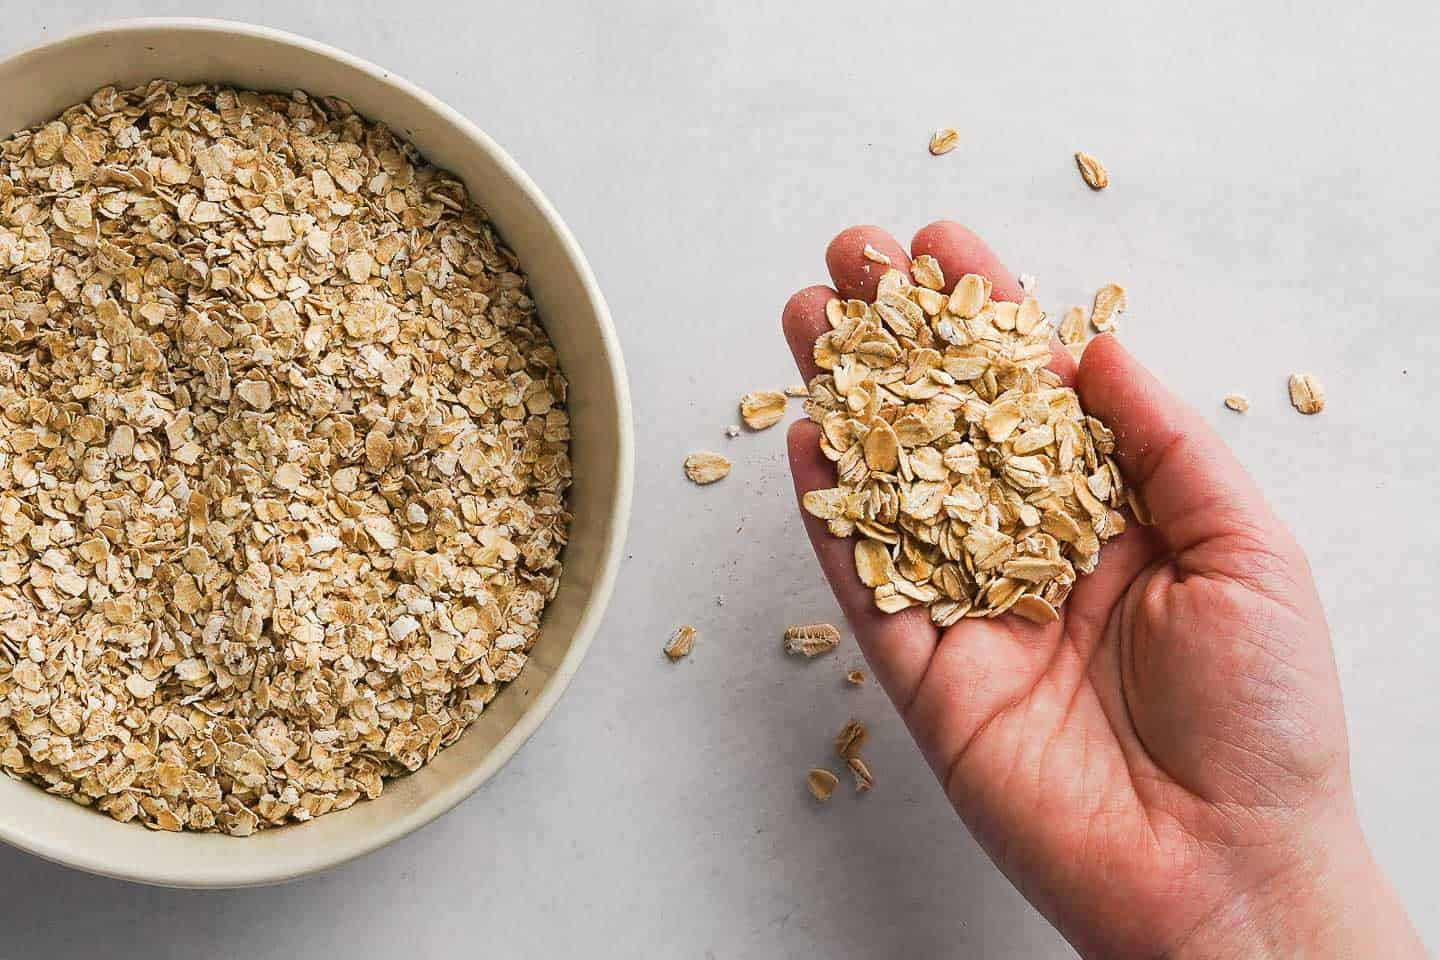 Bowl of quick oats next to hand holding old-fashioned rolled oats